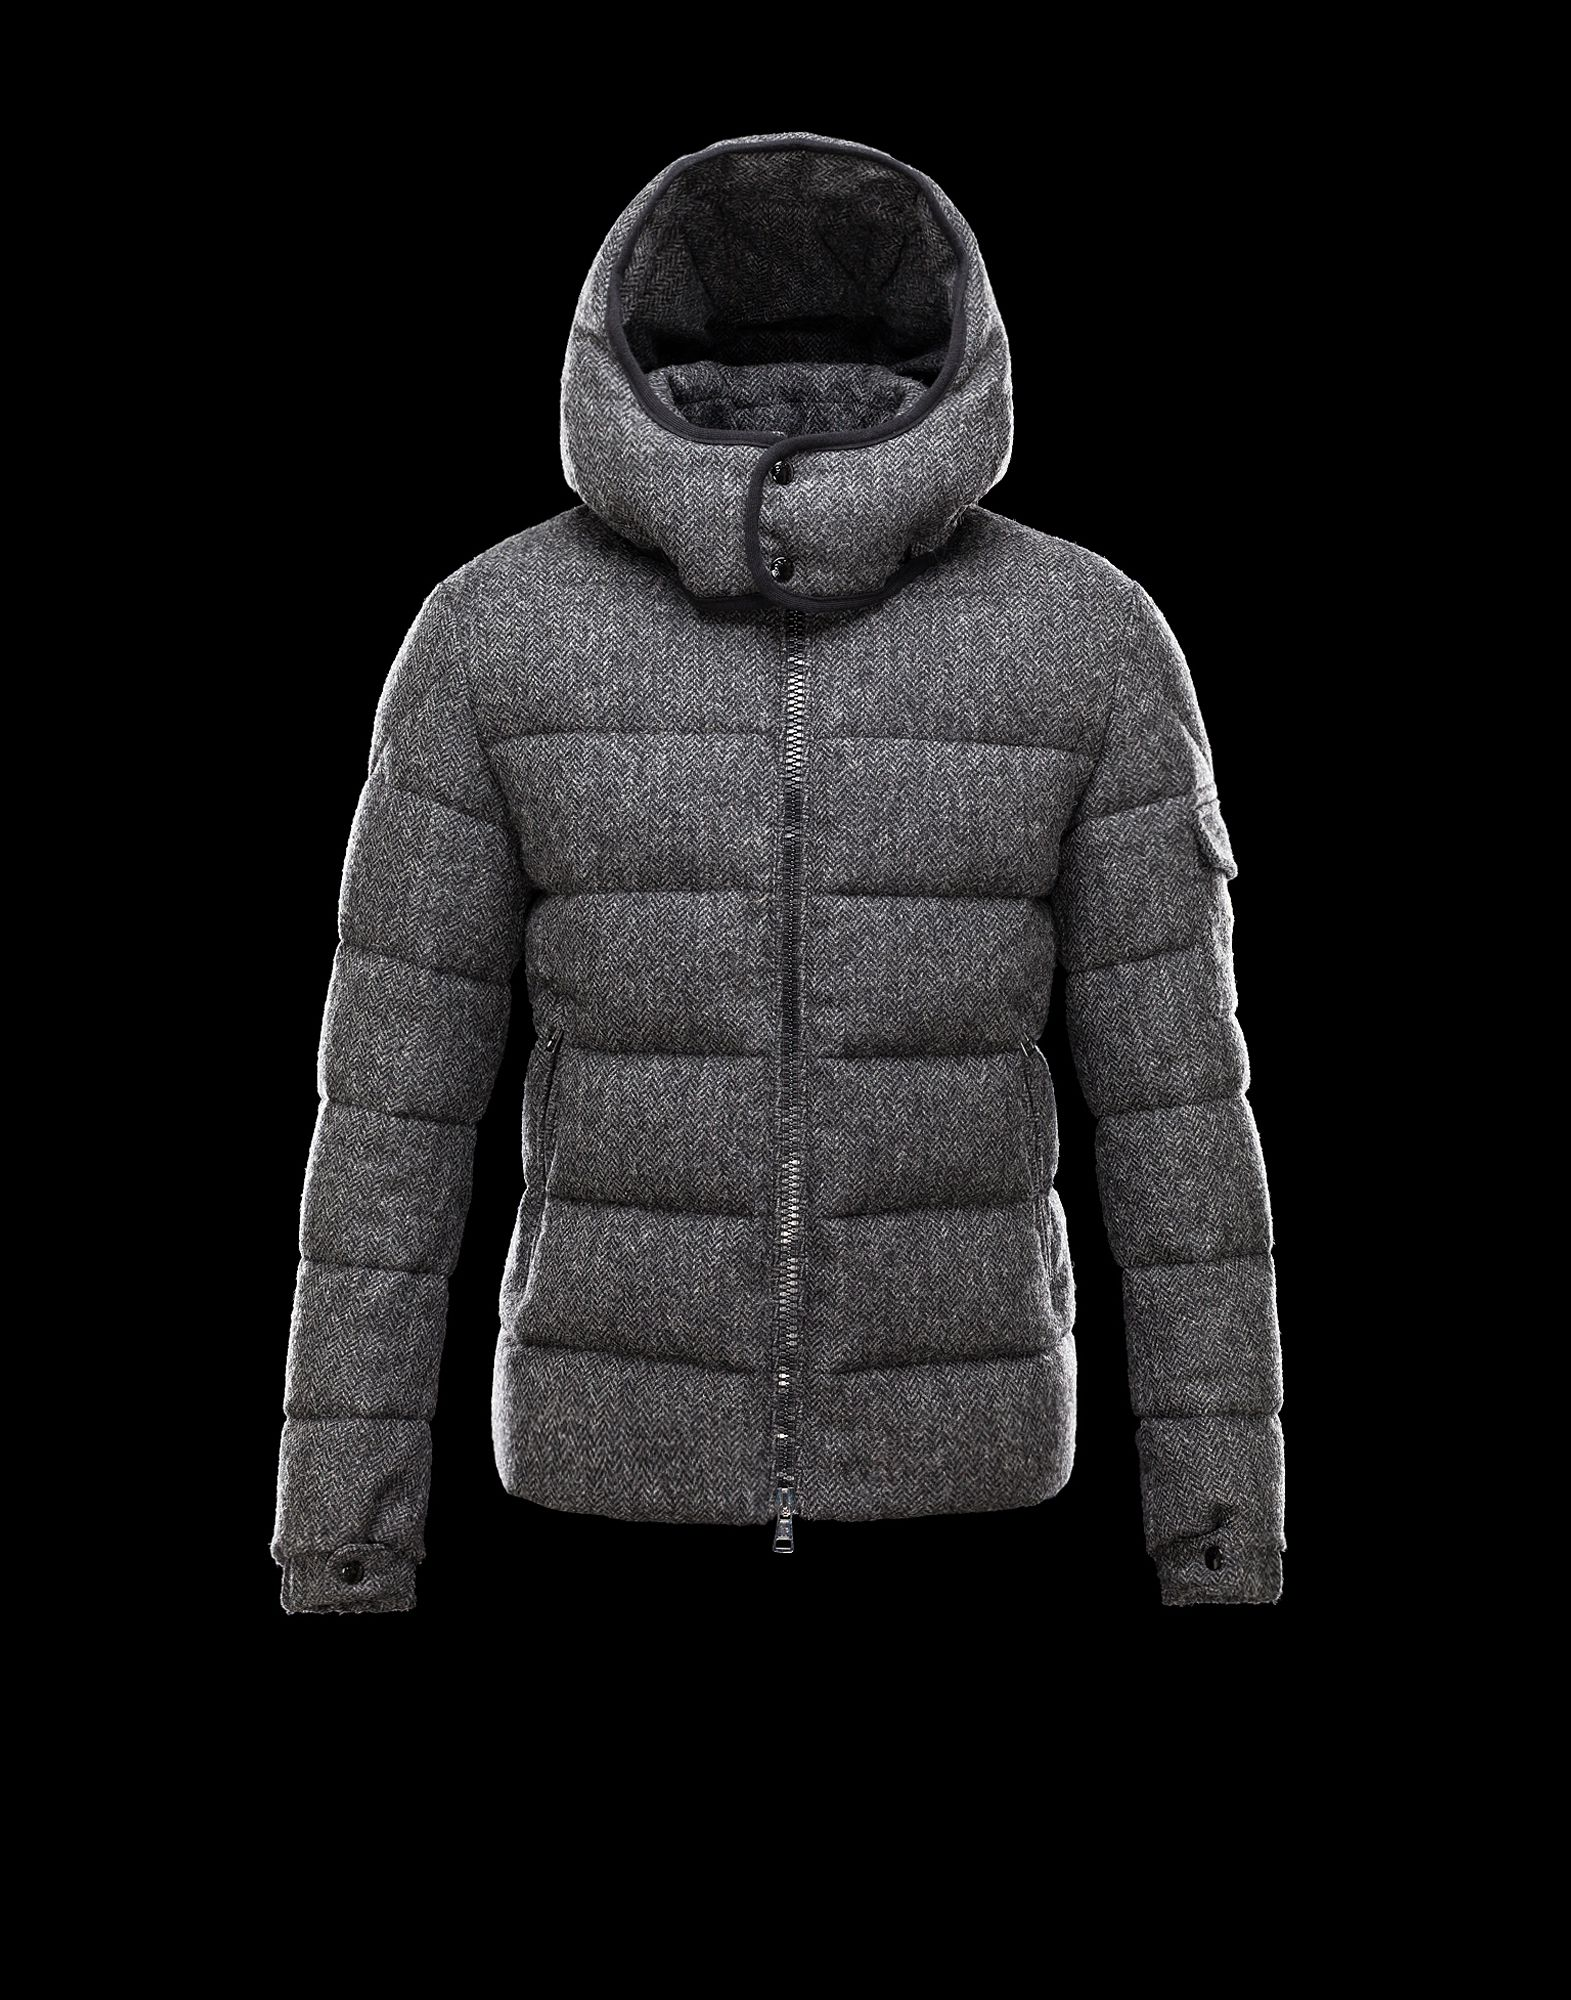 Men's Moncler CHIMAY Hooded Jacket